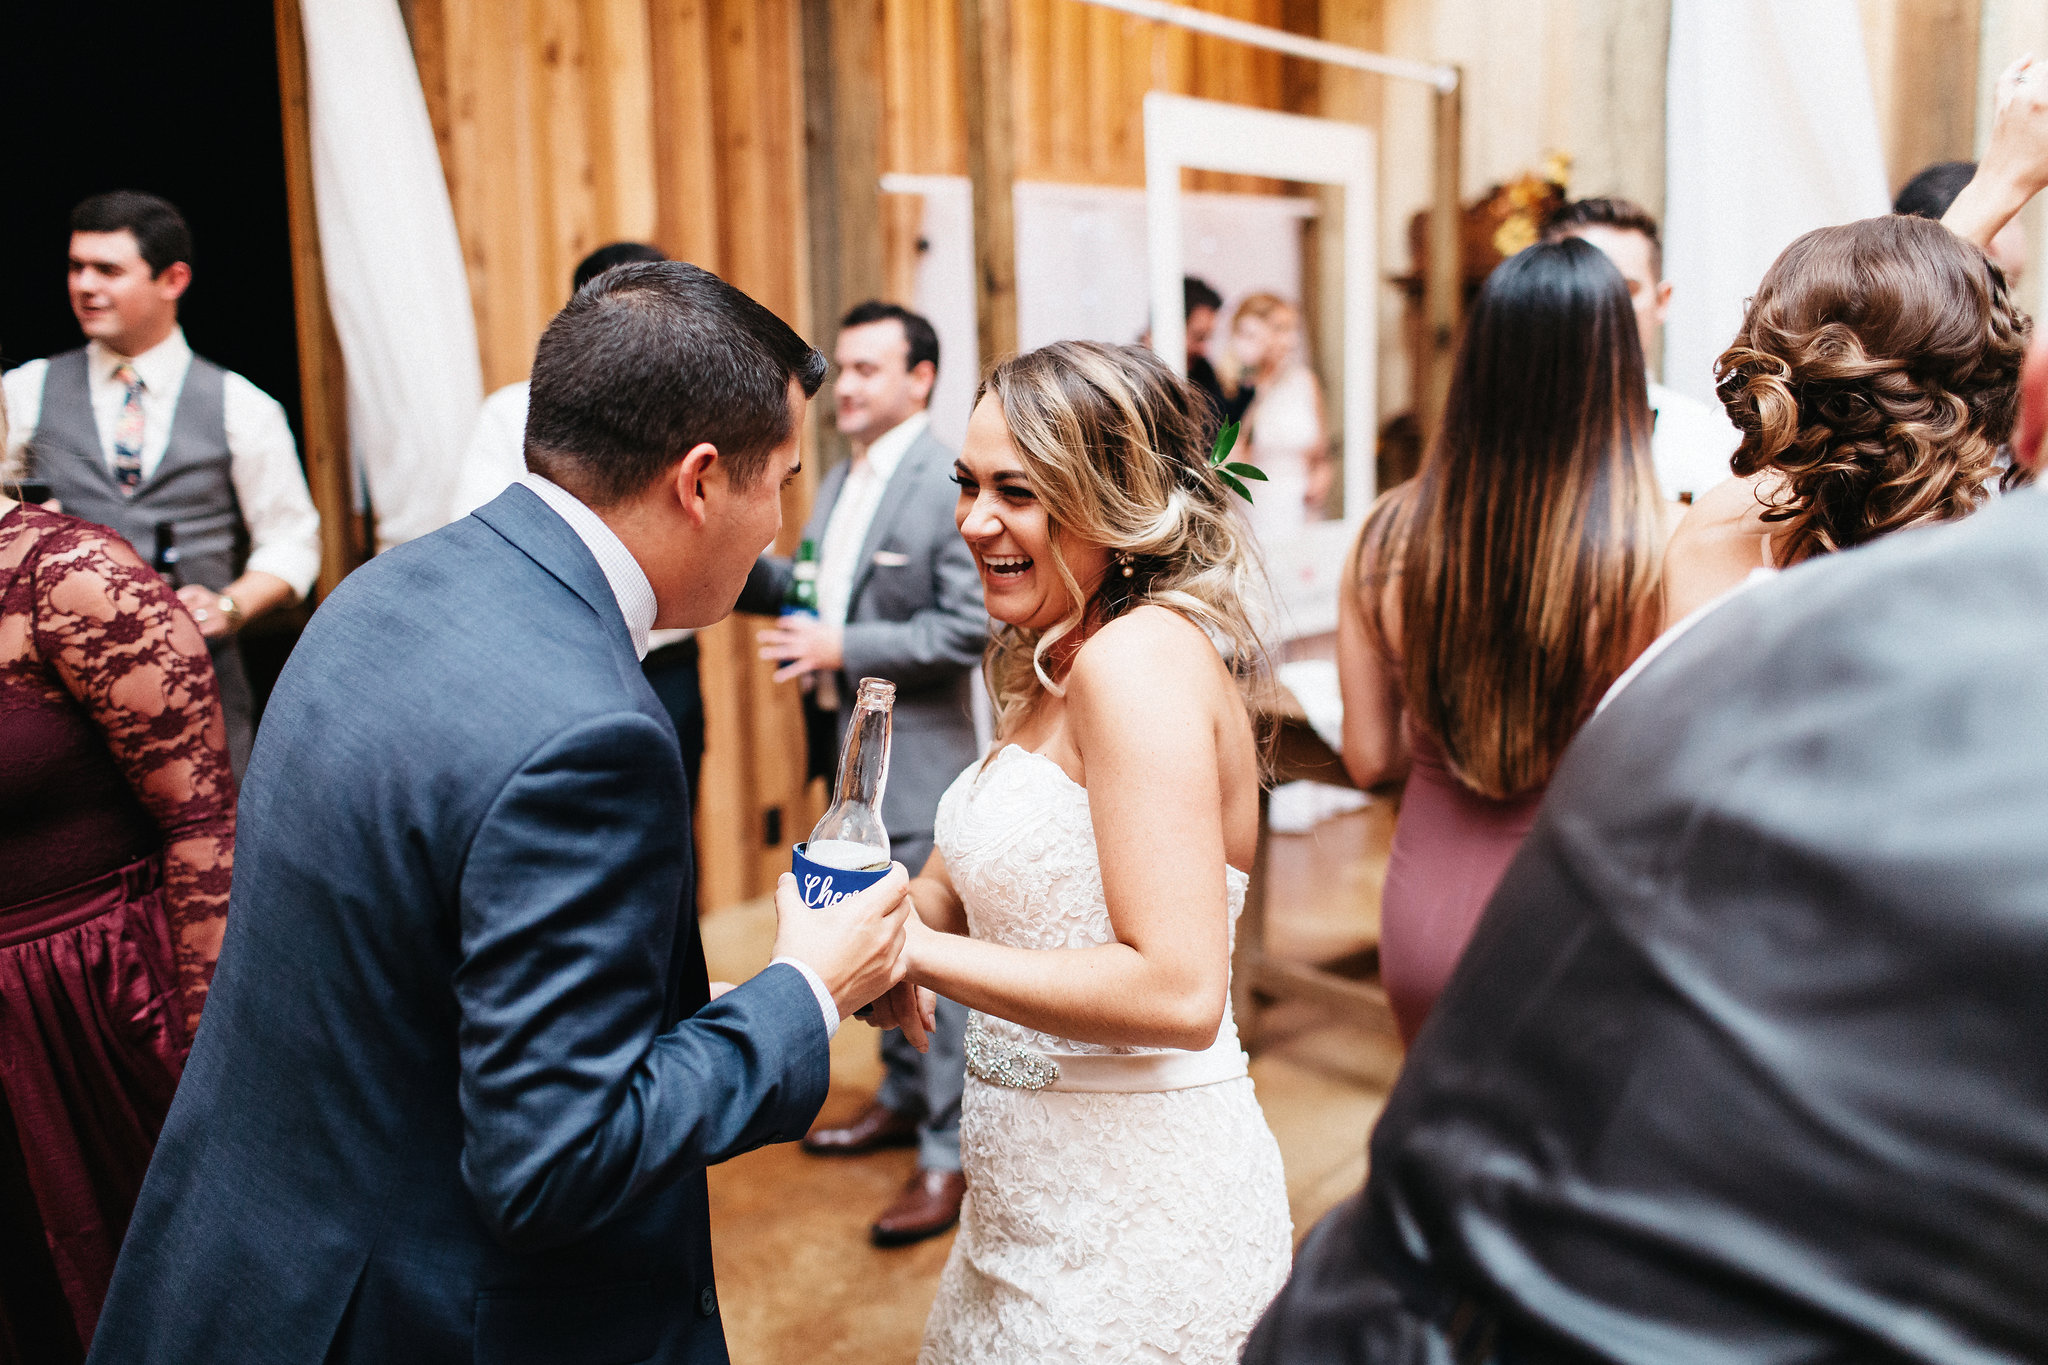 Ashley&NathanMarried2017-11-10at19.26.56PM70.jpg